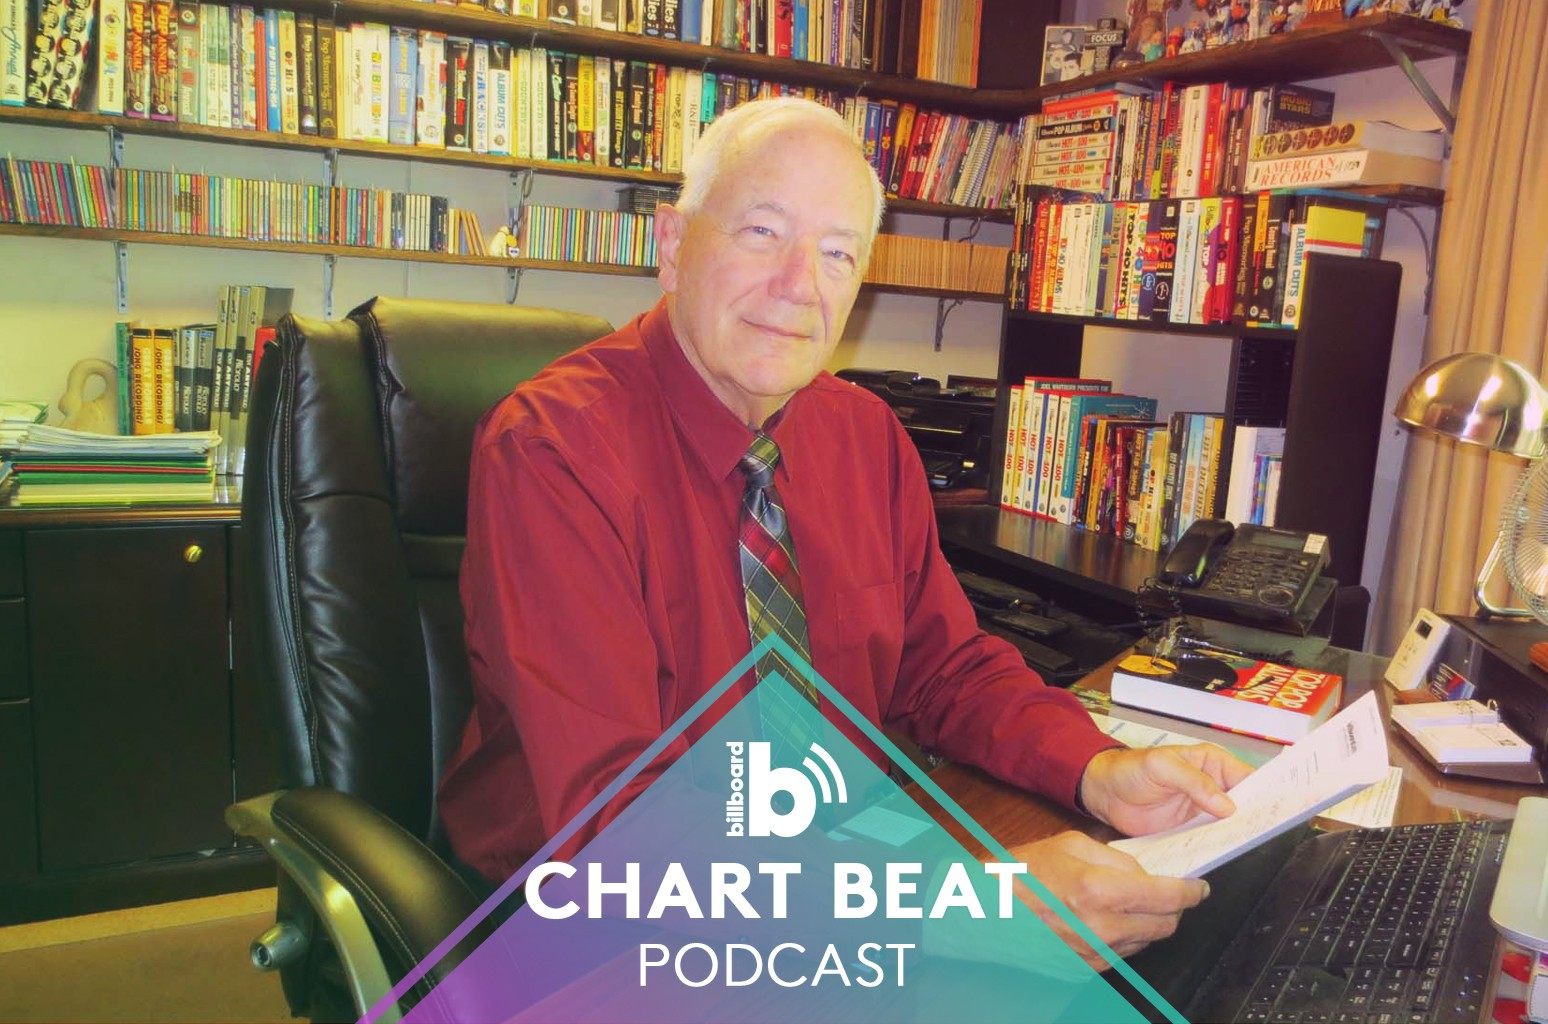 Chart Beat Podcast featuring: Joel Whitburn